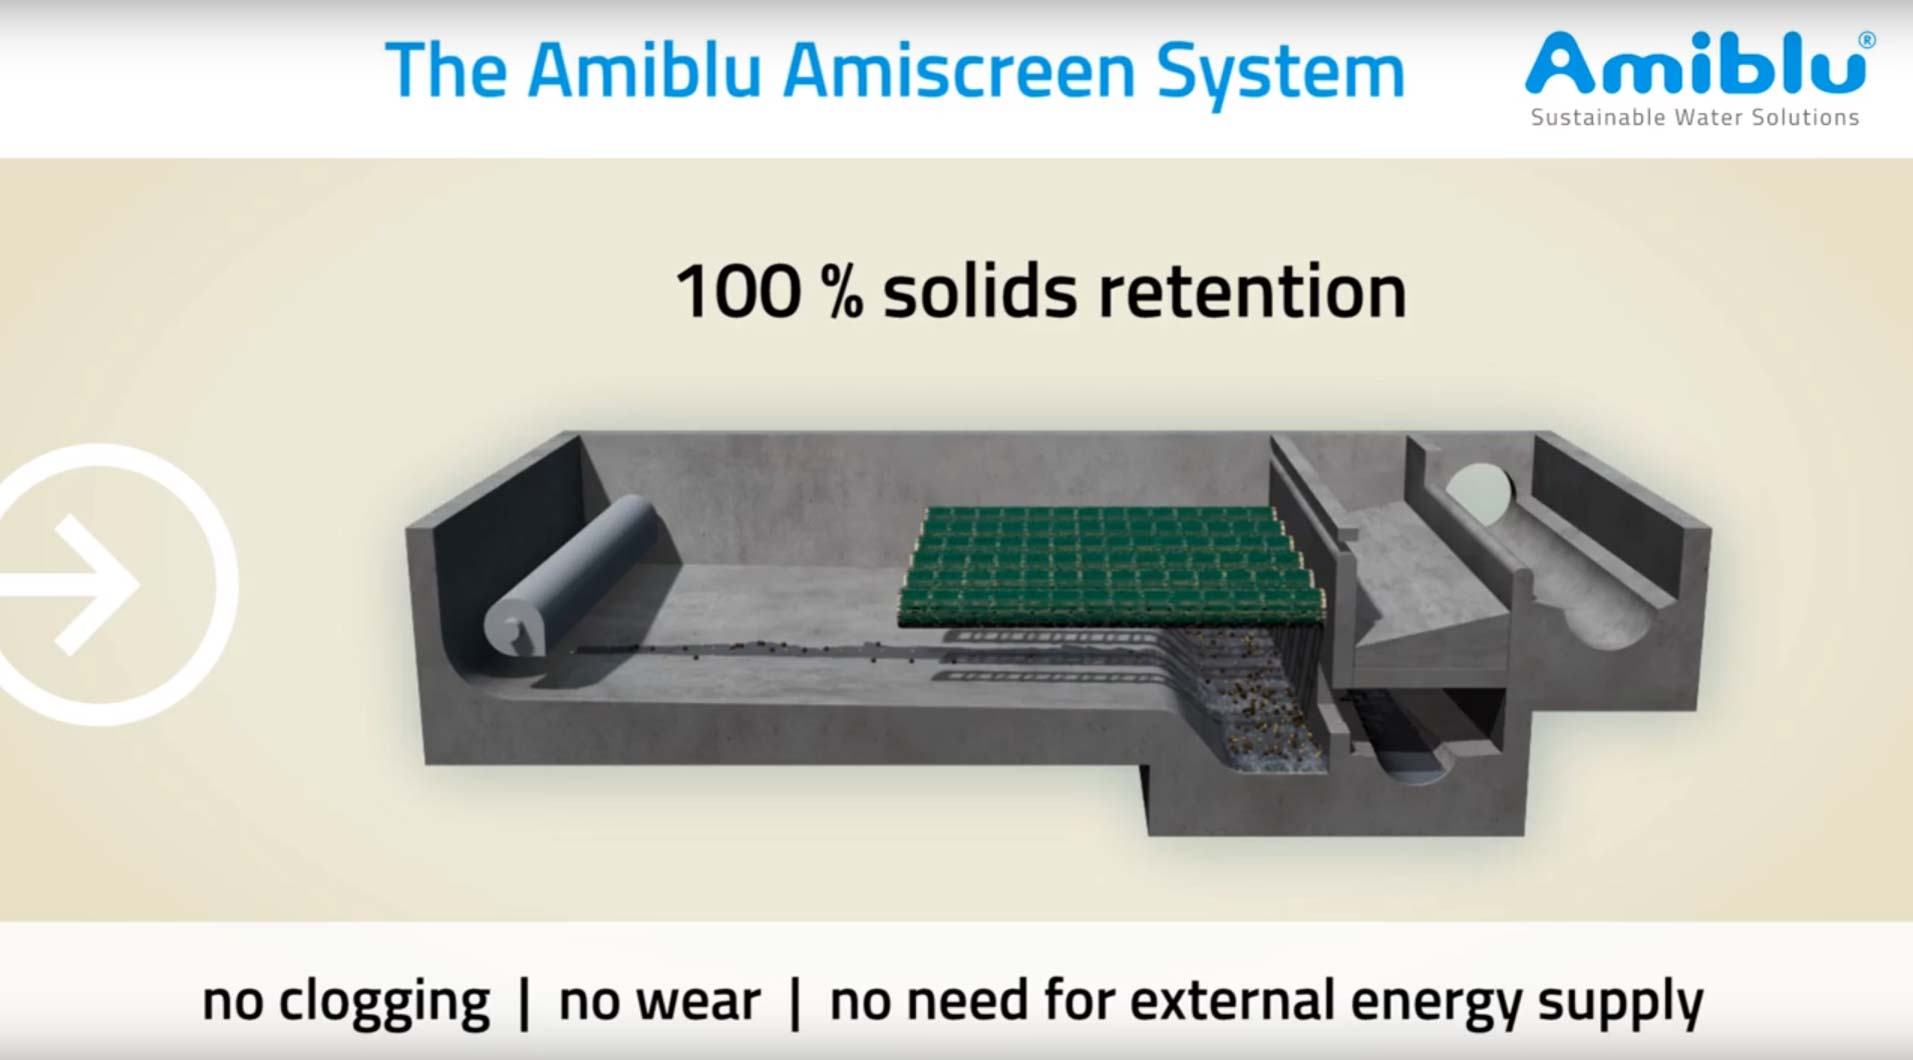 The Amiblu Amiscreen System - 100 % solids retention